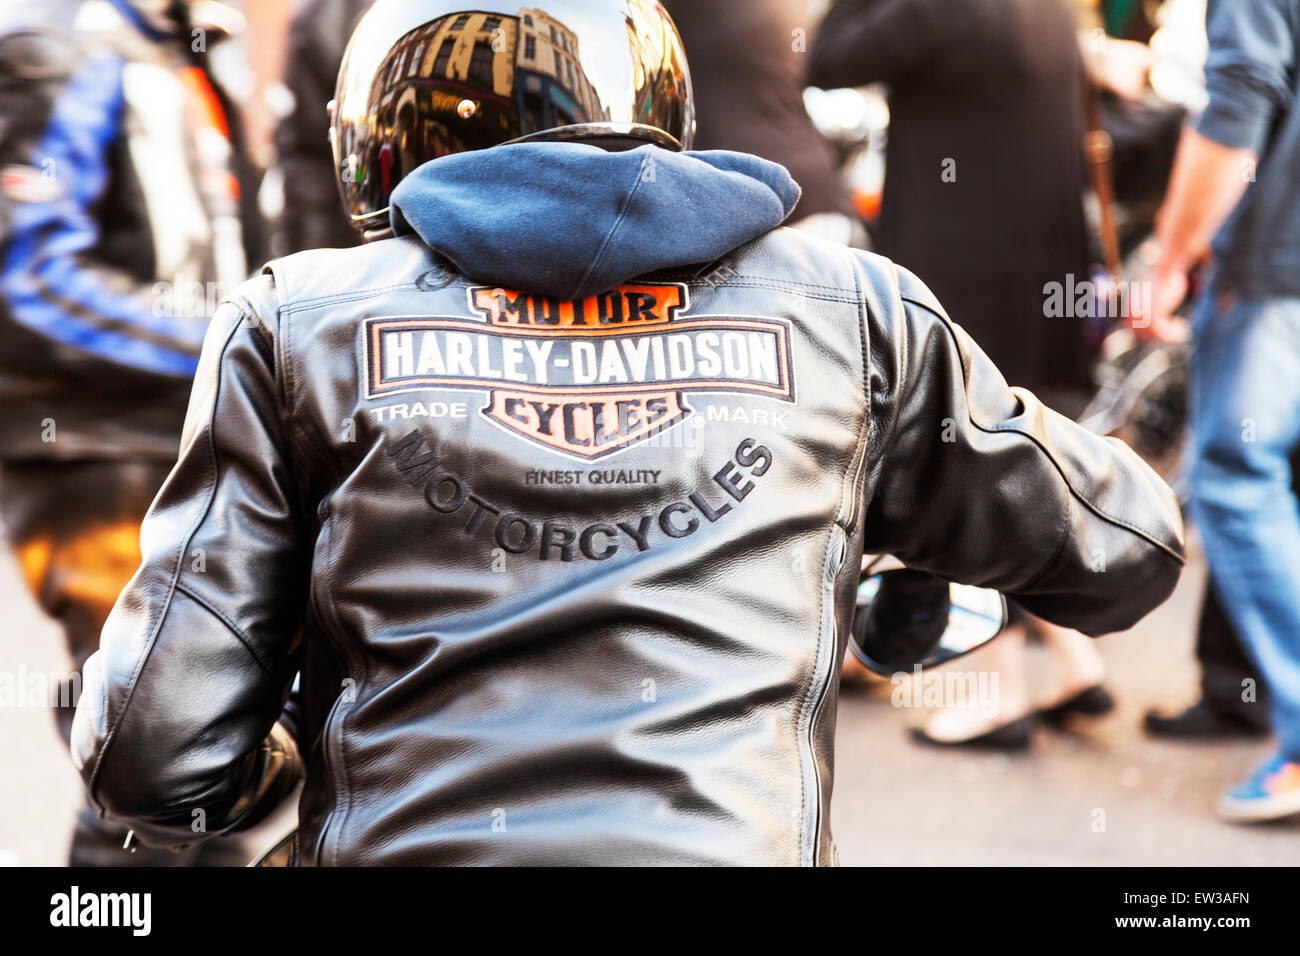 Harley Davidson sign motor bike leather jacket worn by biker gang member motorbike gangs members motorbikes motor - Stock Image